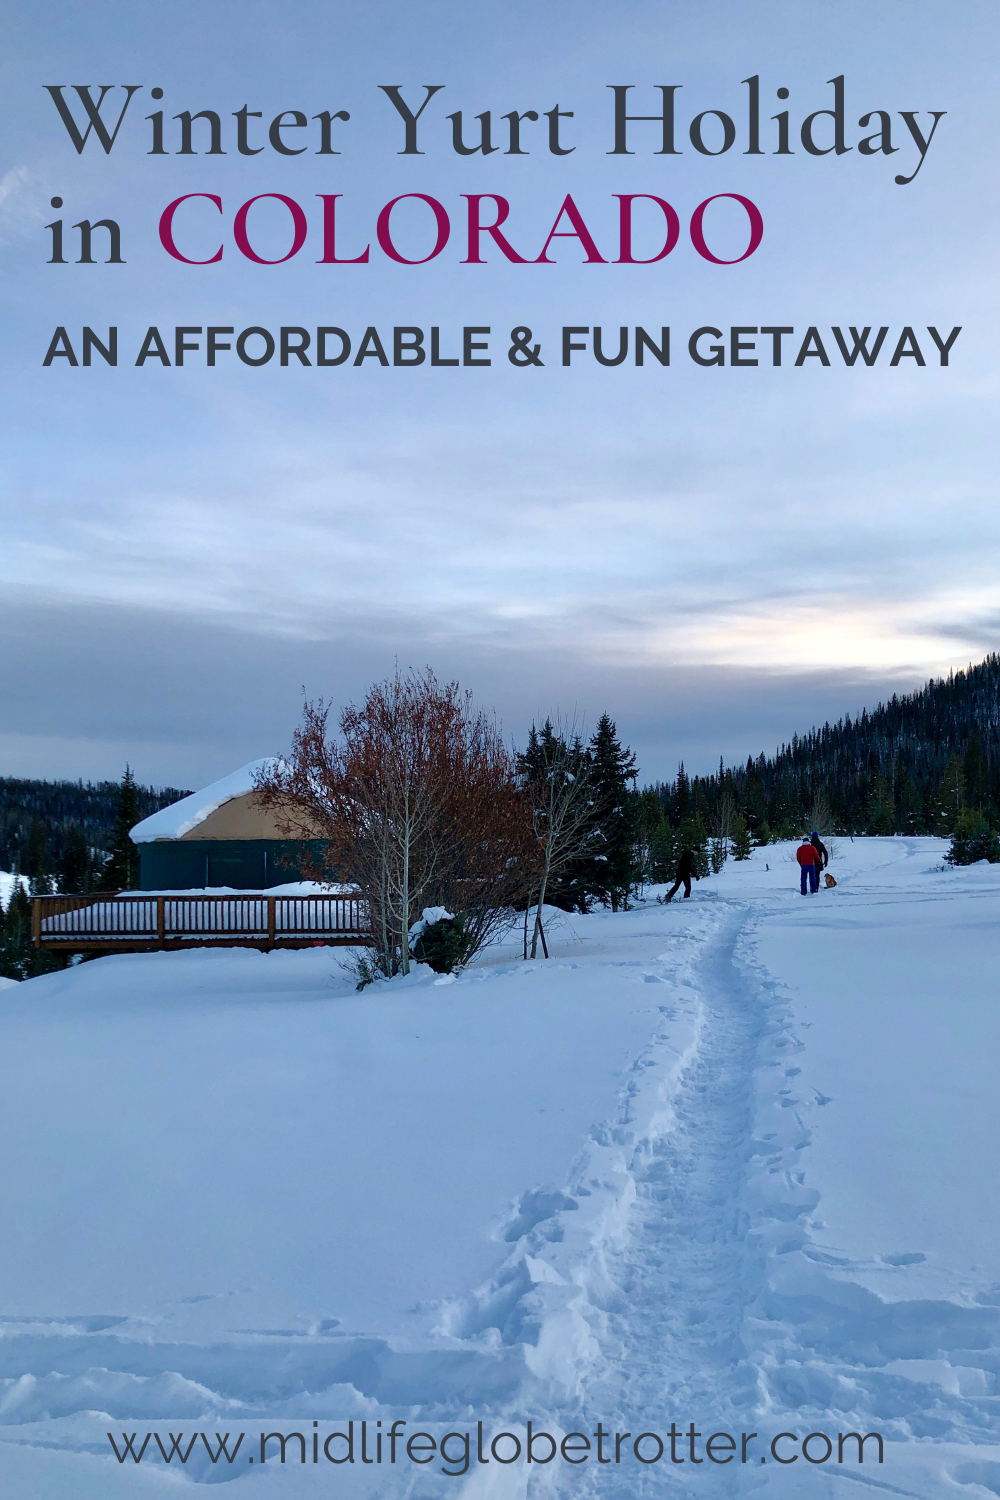 Yurt camping in Colorado: a fun getaway for friends or family adventure. Read my detailed guide to Pearl Lake State Park and activities including nordic skiing, snowshoeing and hiking. A fun option for a US West road trip; family travel, a girls getaway or adventure-seeking midlife women. Planning tips: how to reserve & packing essentials. Includes a guide to visit Steamboat Springs on a budget. Wonderful outdoor photography. #travelblogger #budgettravel #budgetvacation #roadtrips #womentravel